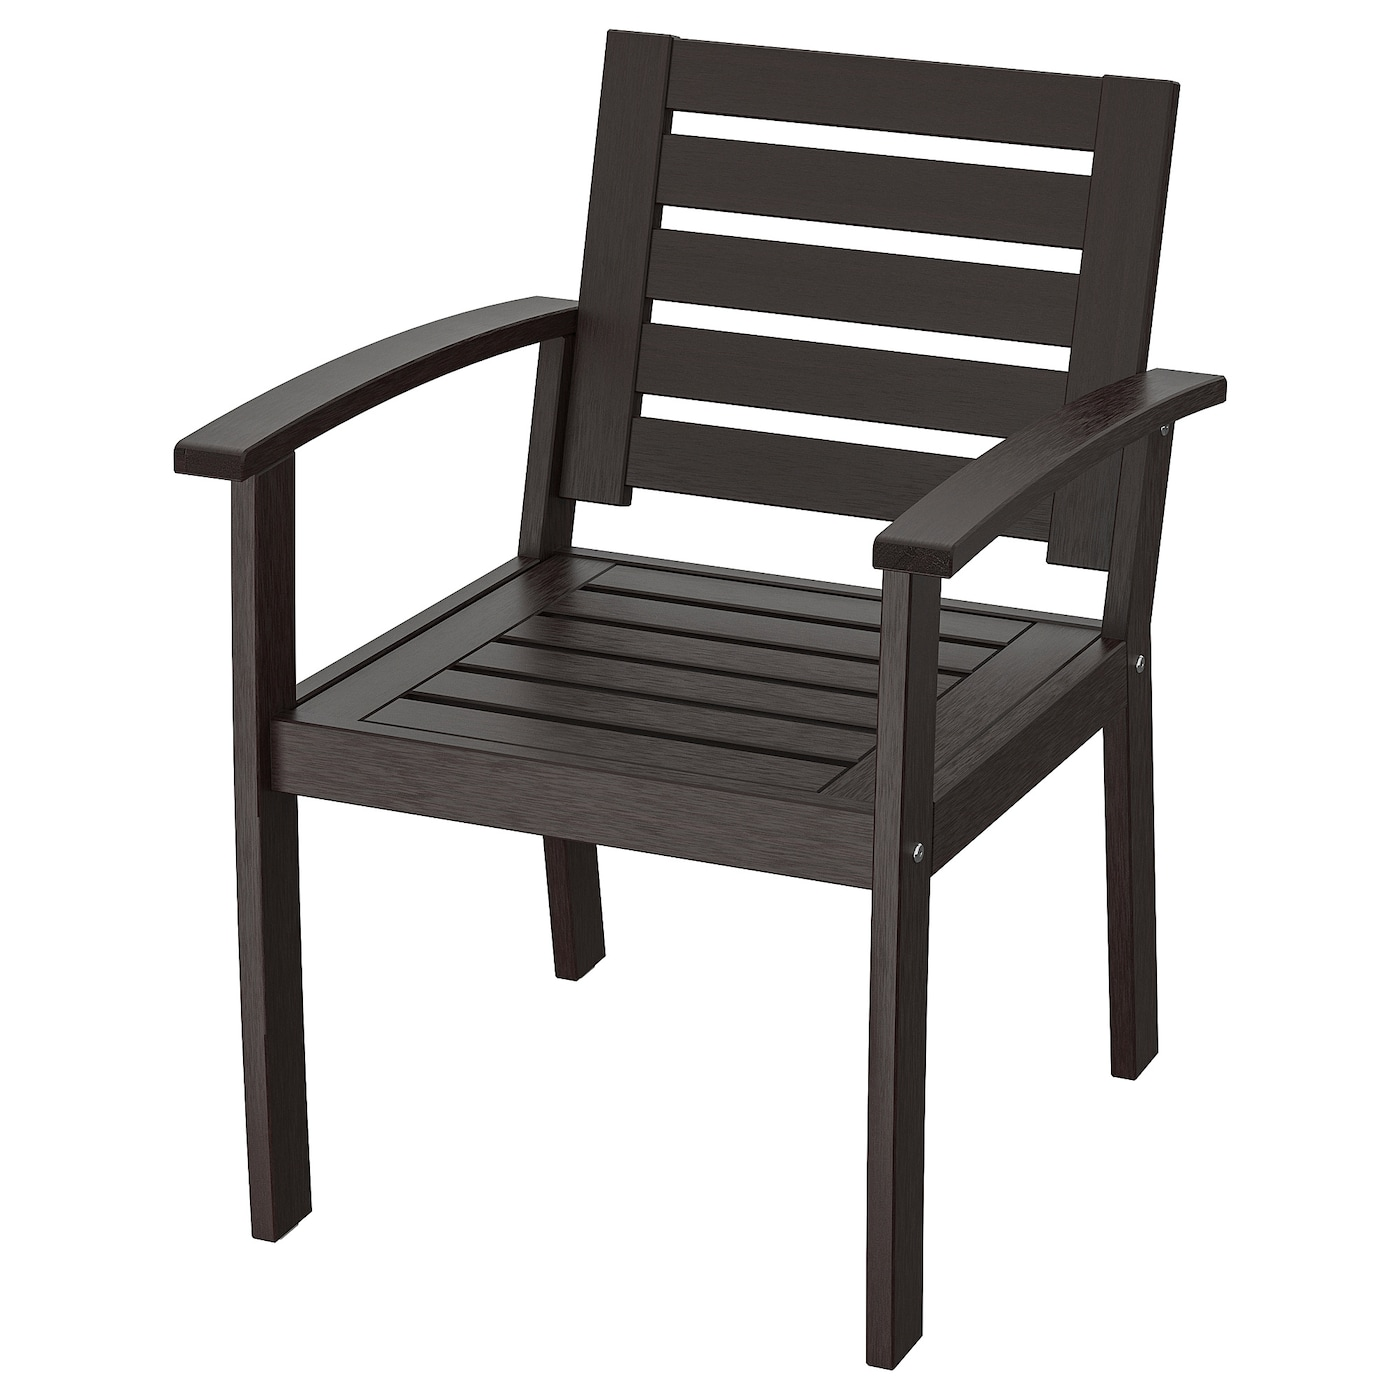 Kloven Chair With Armrests Outdoor Black Brown Ikea